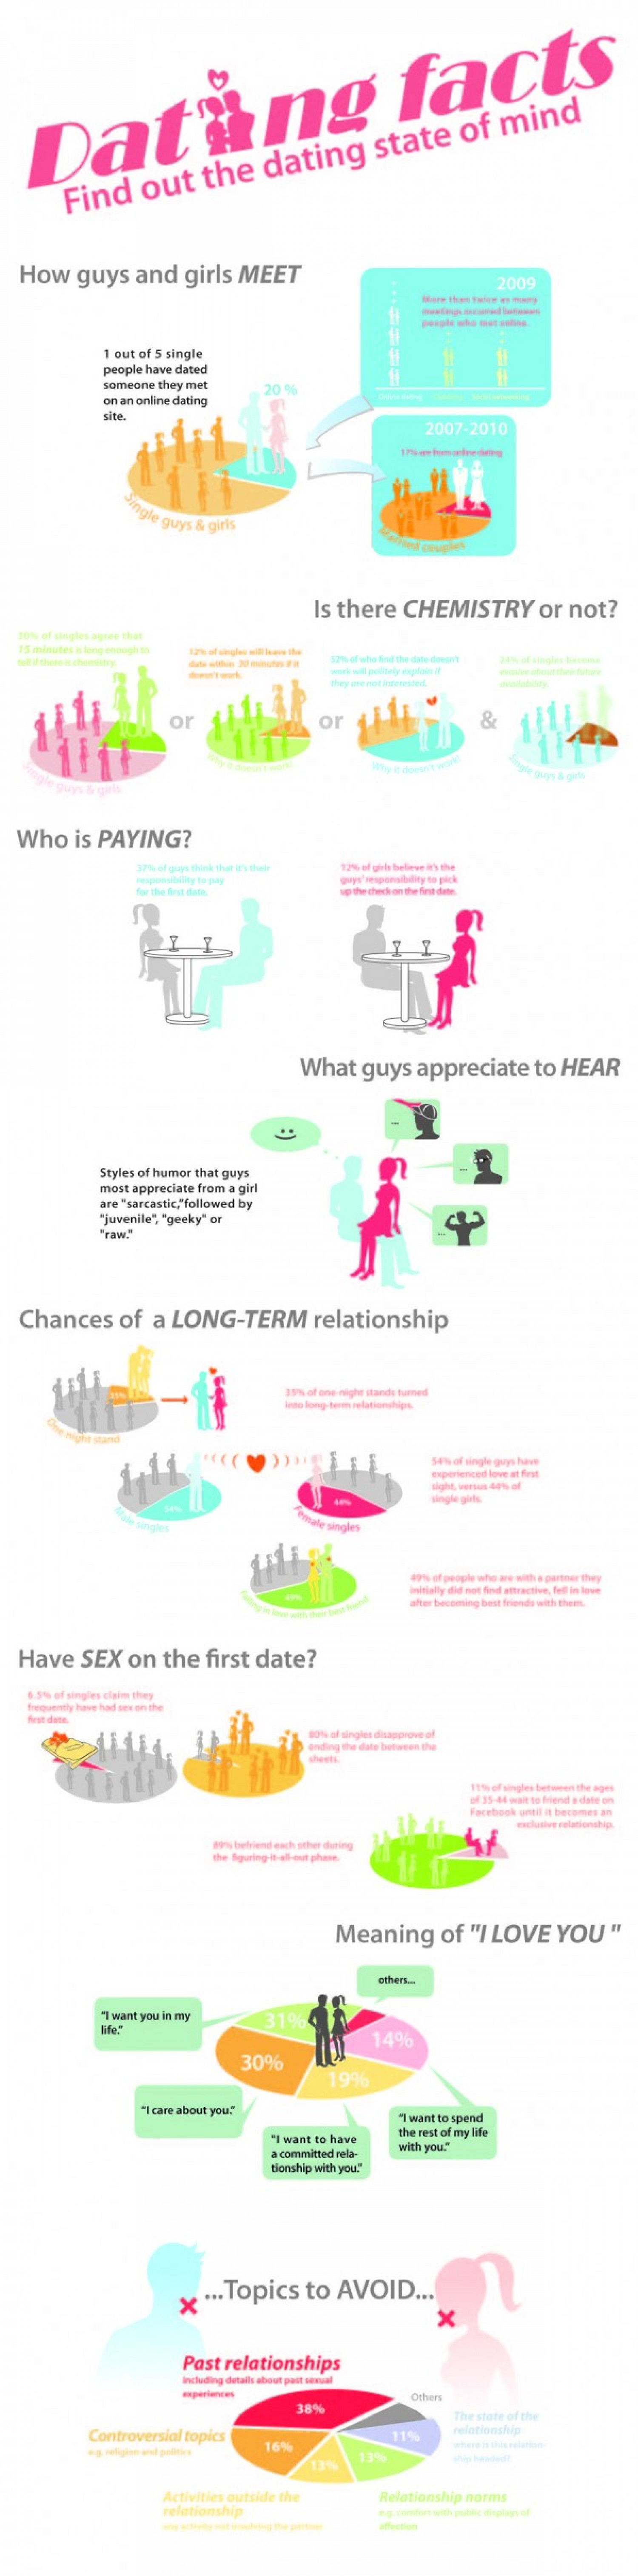 Dating Facts to Understand the Dating Scene Infographic